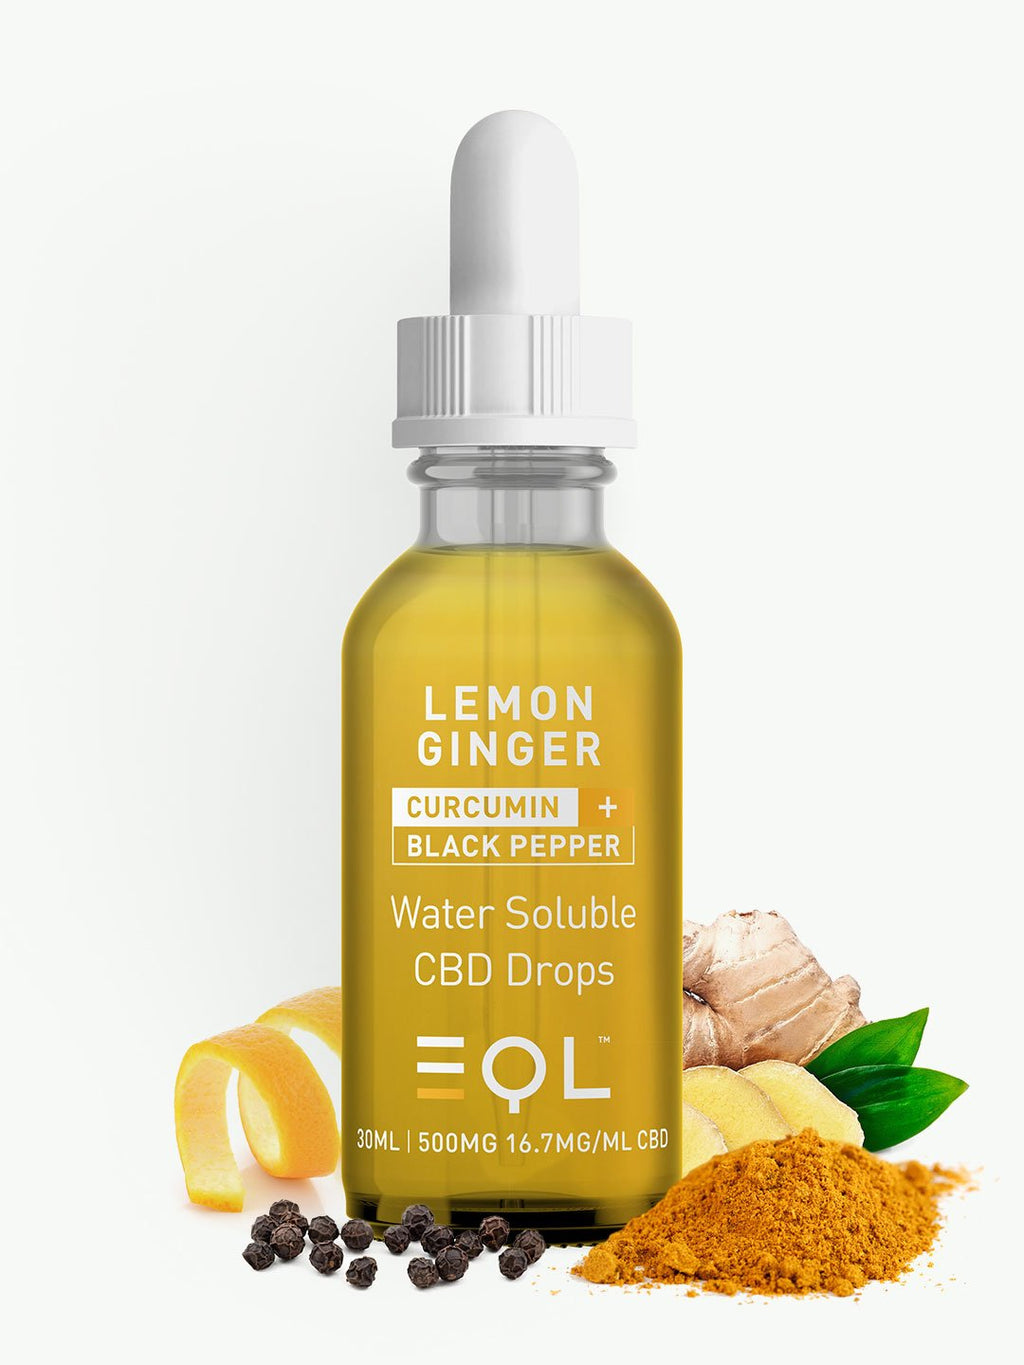 500mg CBD Water Soluble|Black Pepper, Curcumin, Lemon & Ginger